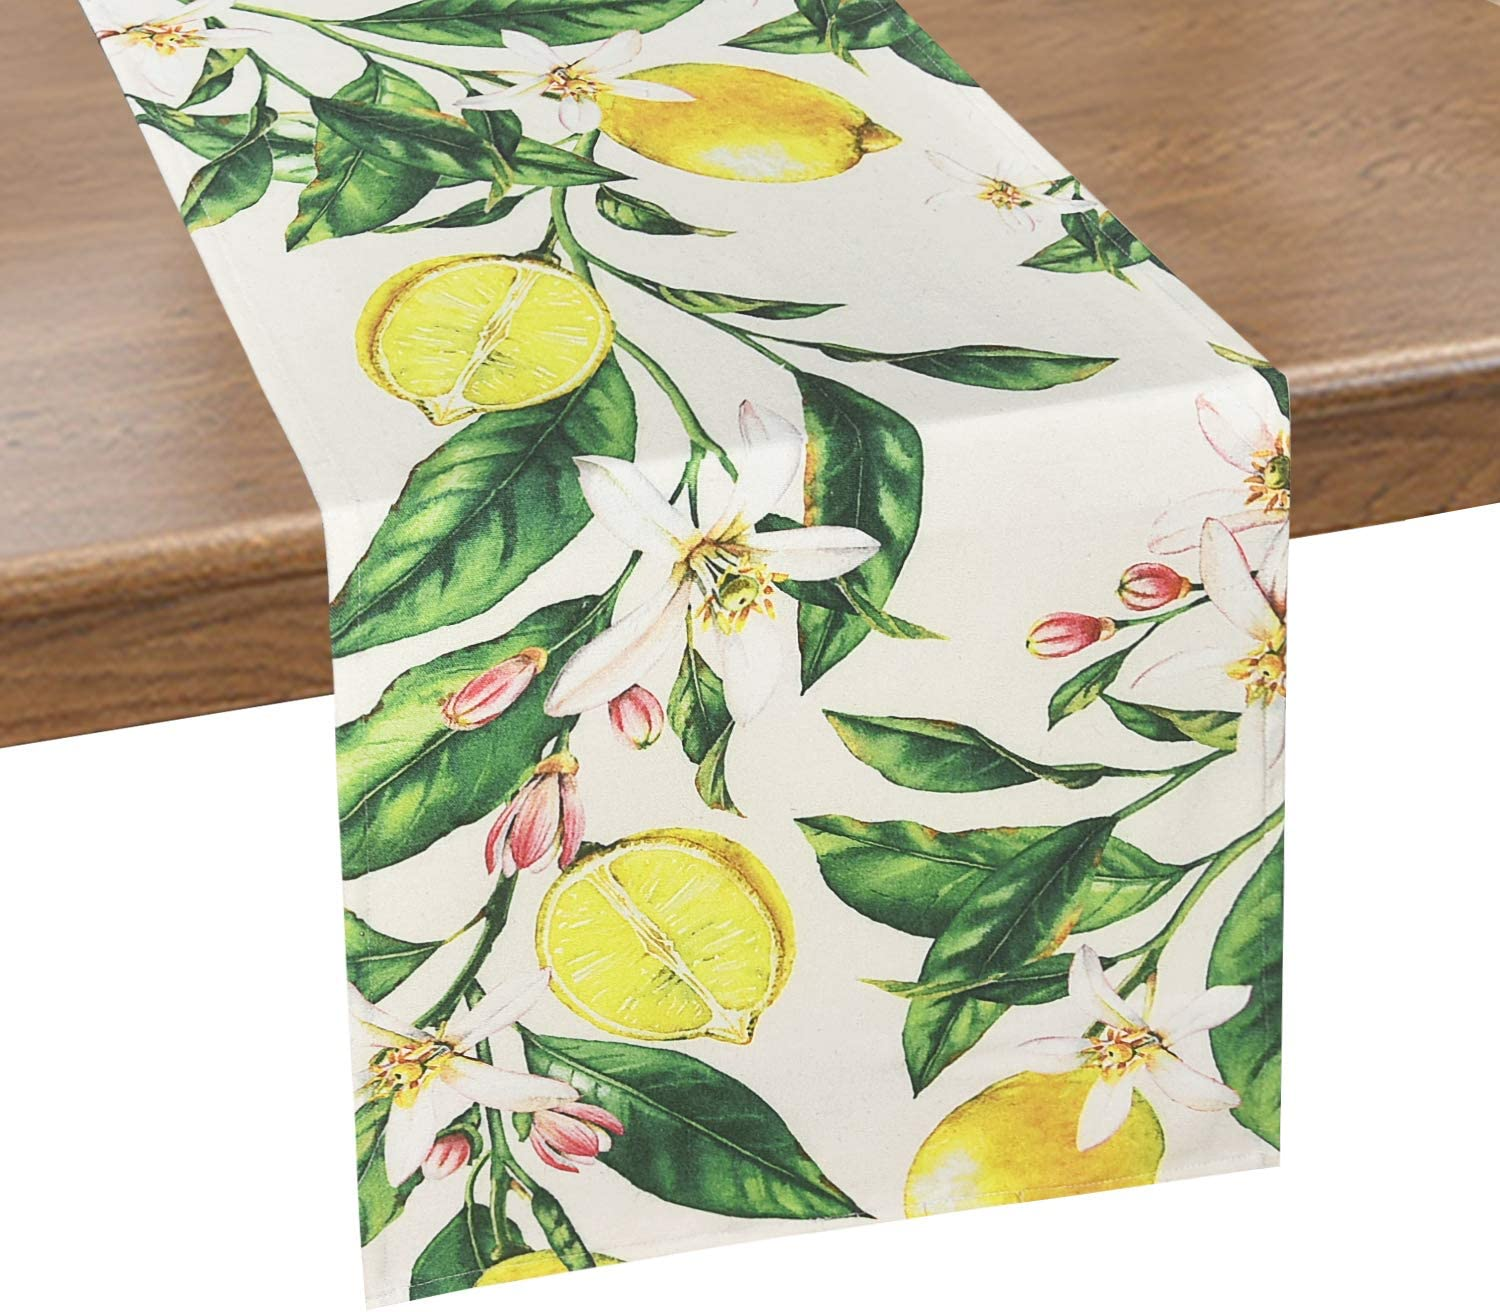 Alishomtll Lemon Table Runner Yellow and Green Printed Flower Table Runners for Spring Holiday, Summer, Catering Events, Dinner Parties, Wedding, Indoor and Outdoor Parties, 14